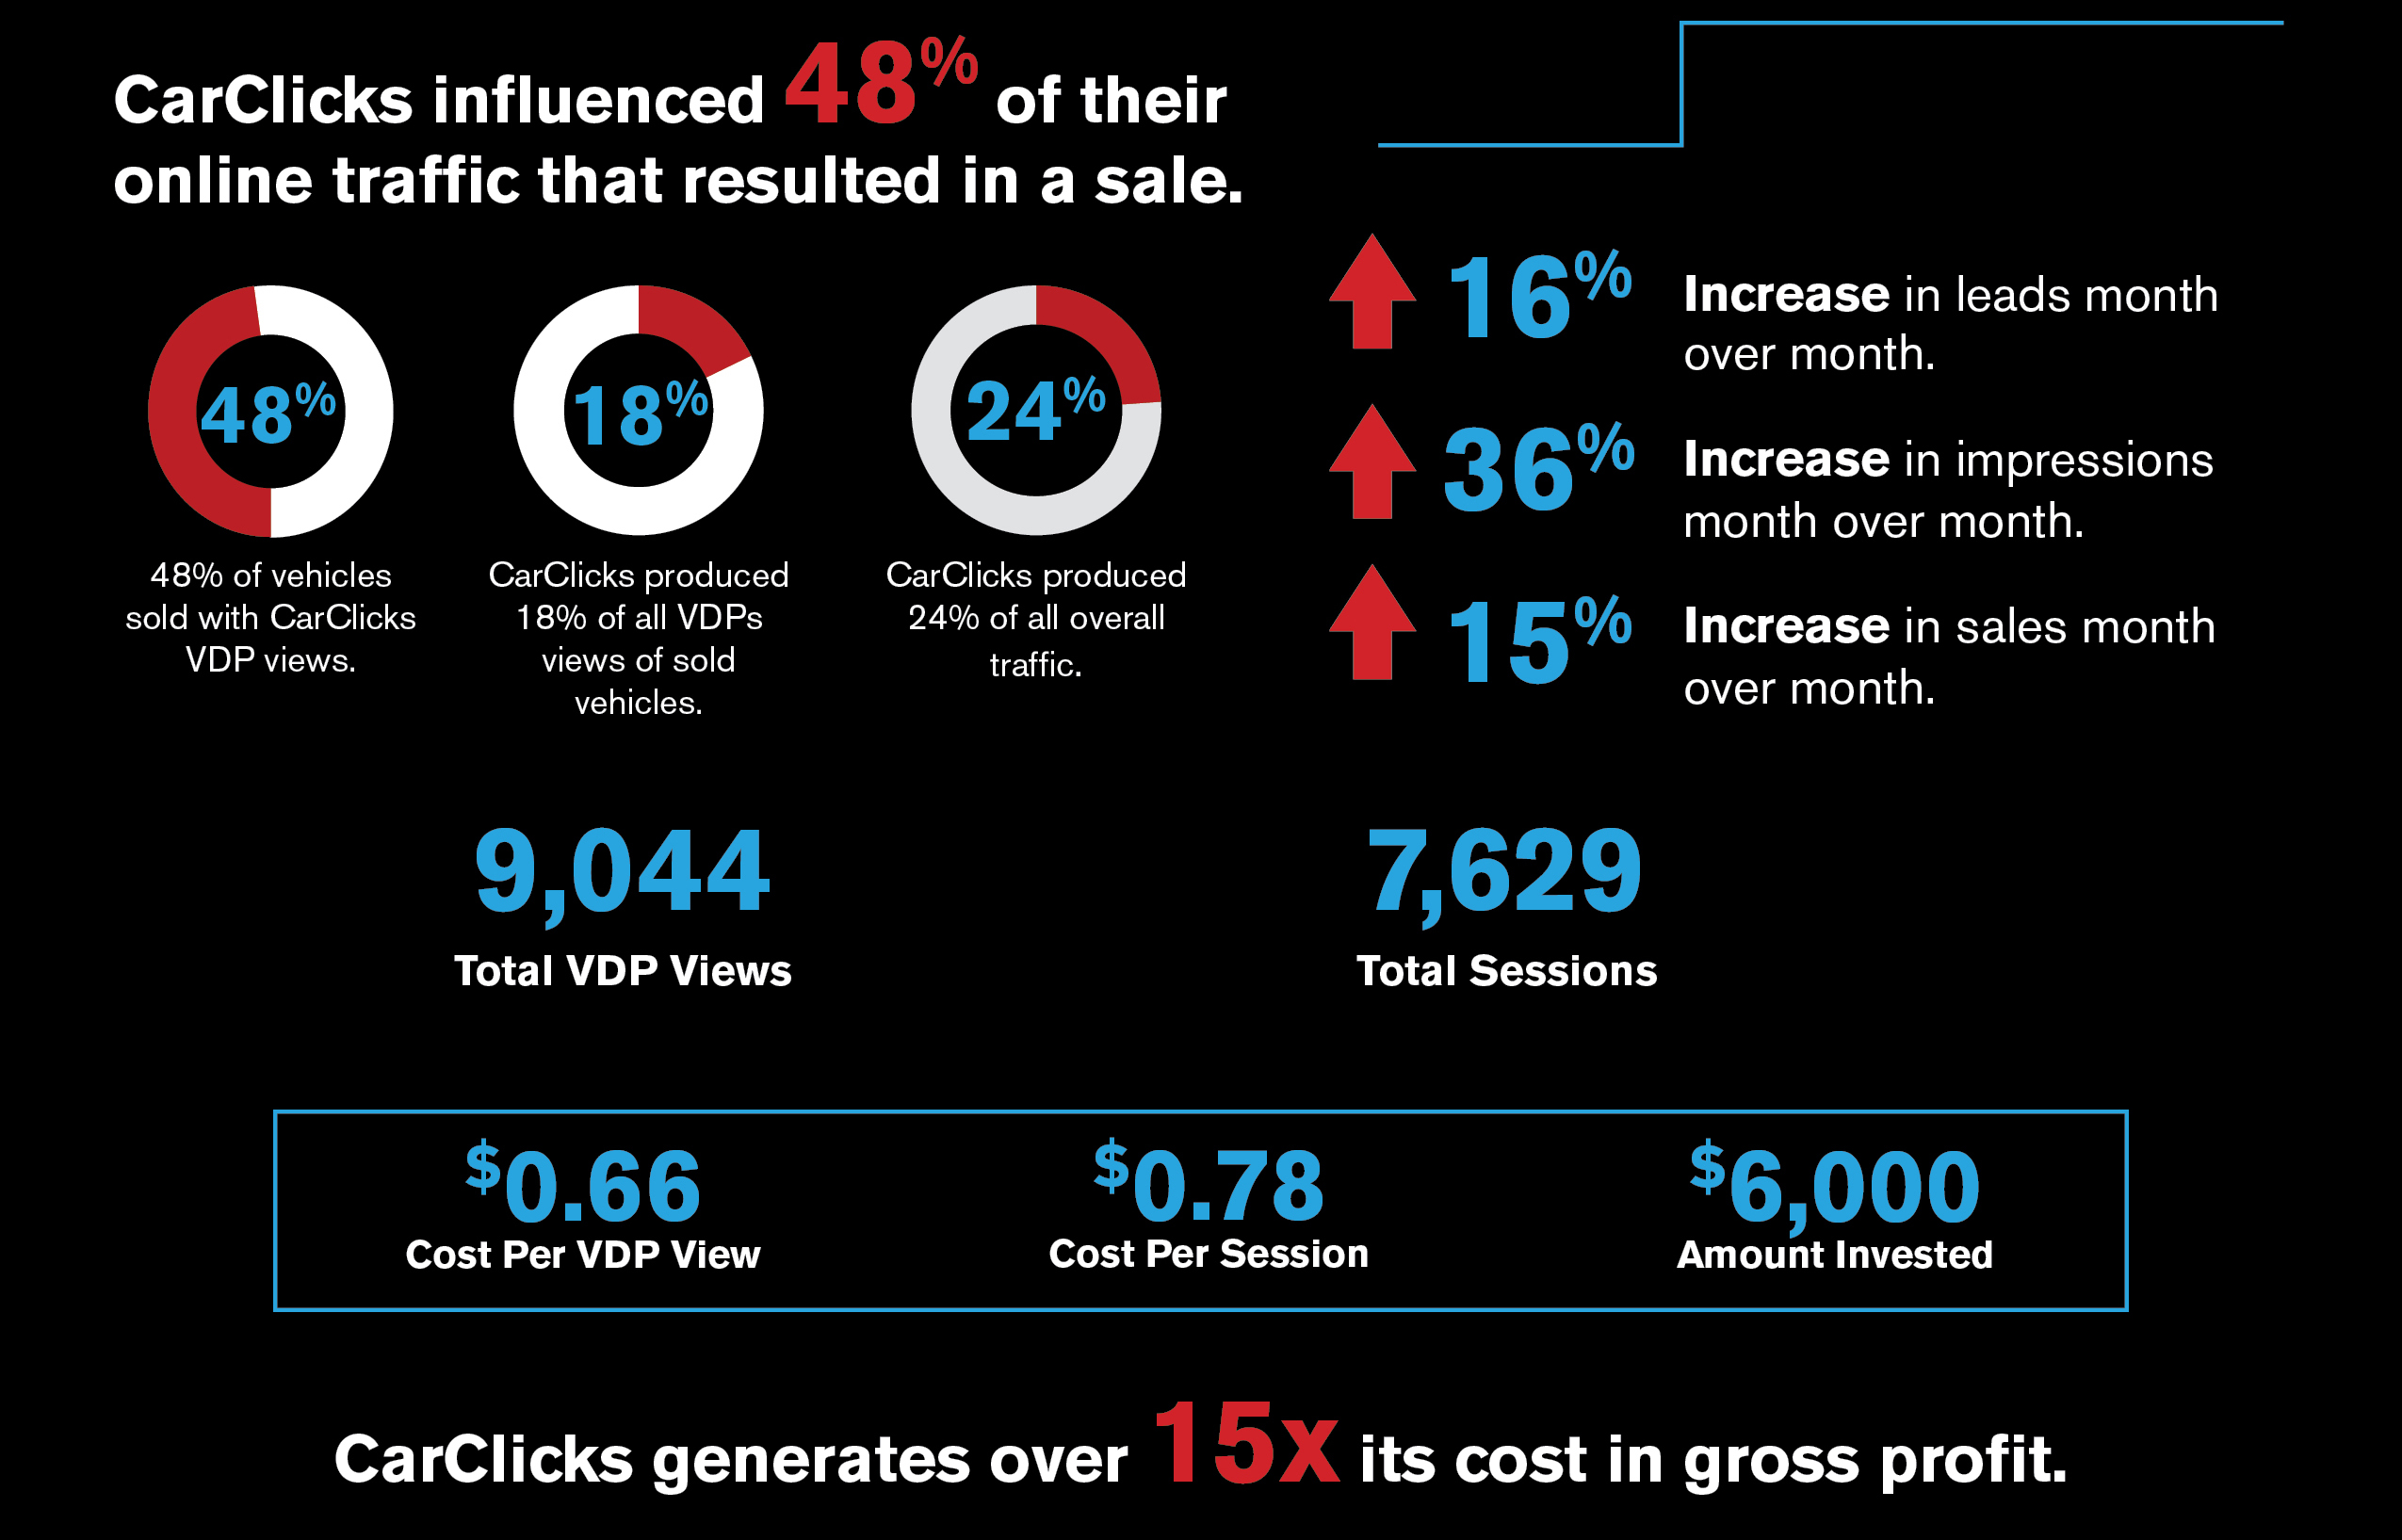 CarClicks Case Study Results